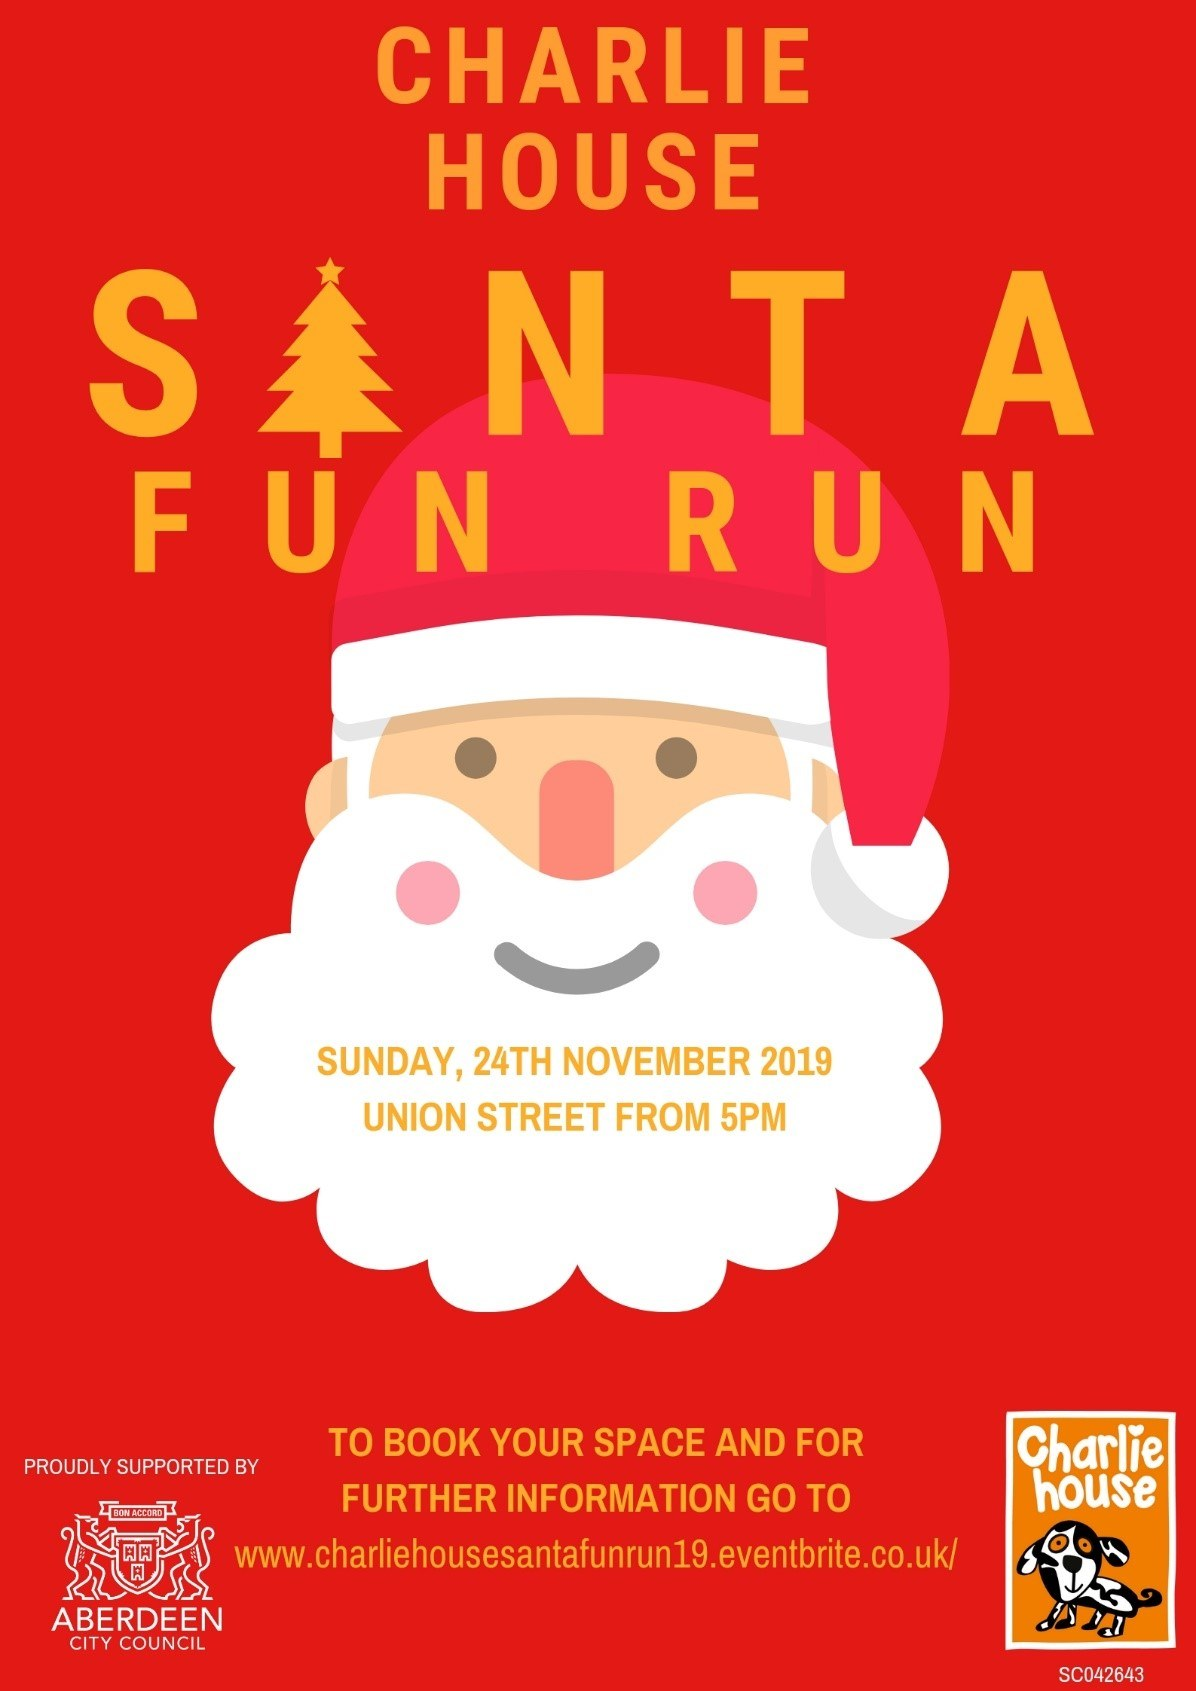 St Margaret's Gets into the Christmas Spirit with Charlie House's Festive Fun Run